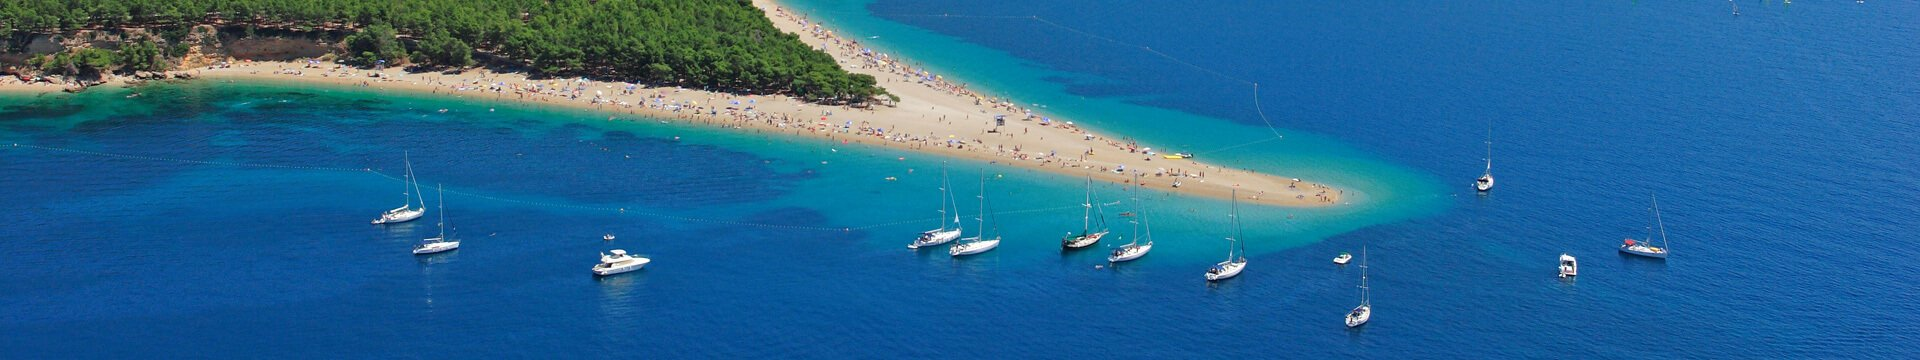 Brac, Beach Zlatni rat | Adria Camps